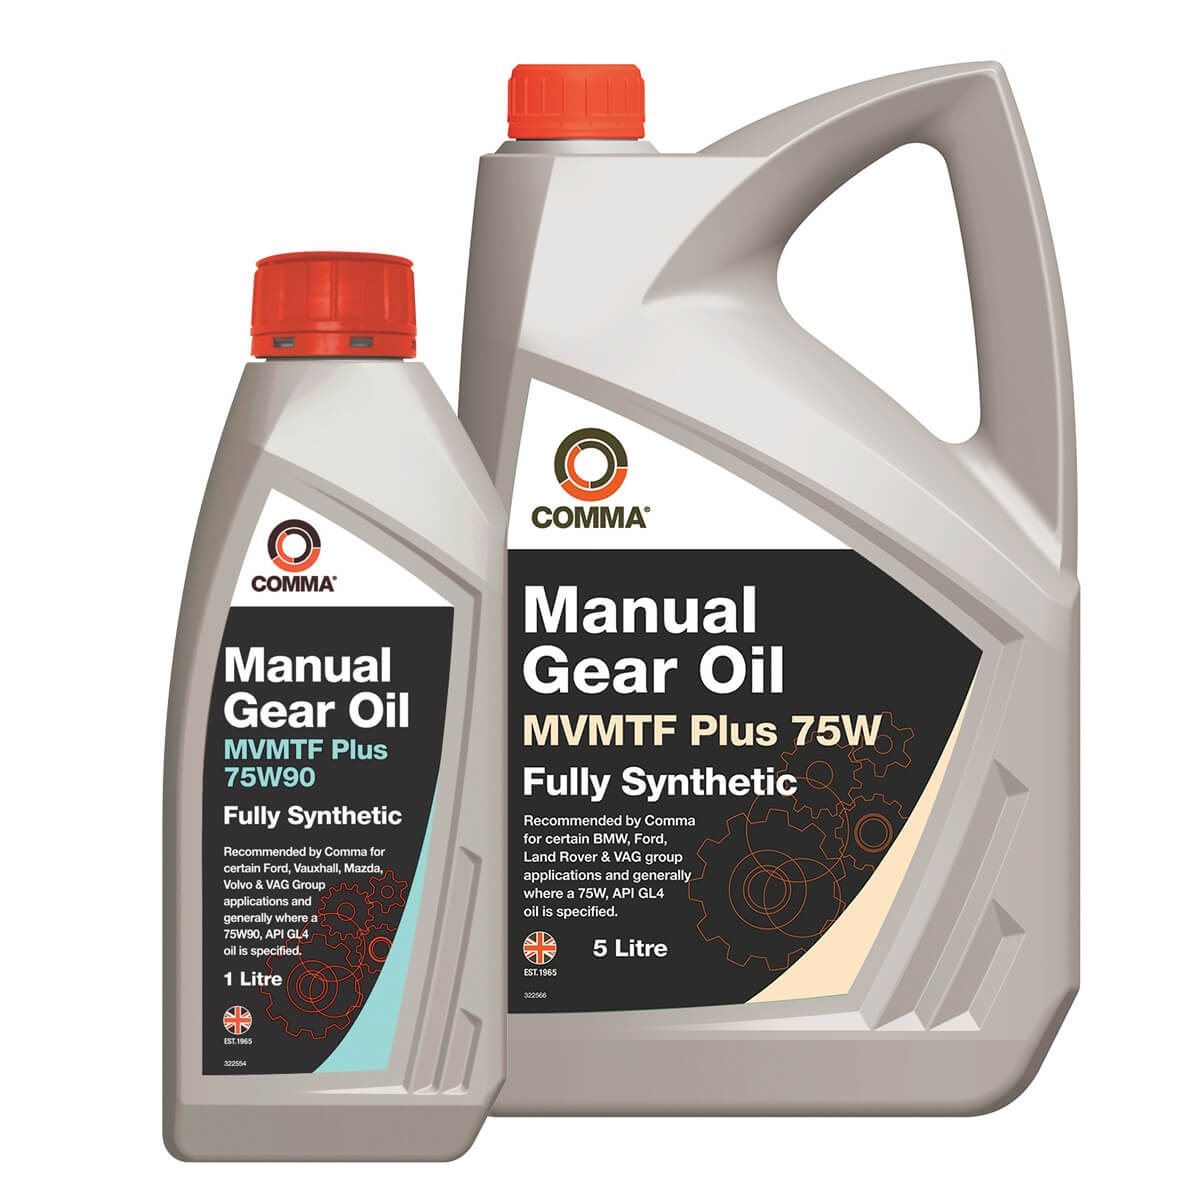 FIAT DUNA Manual Transmission Oil